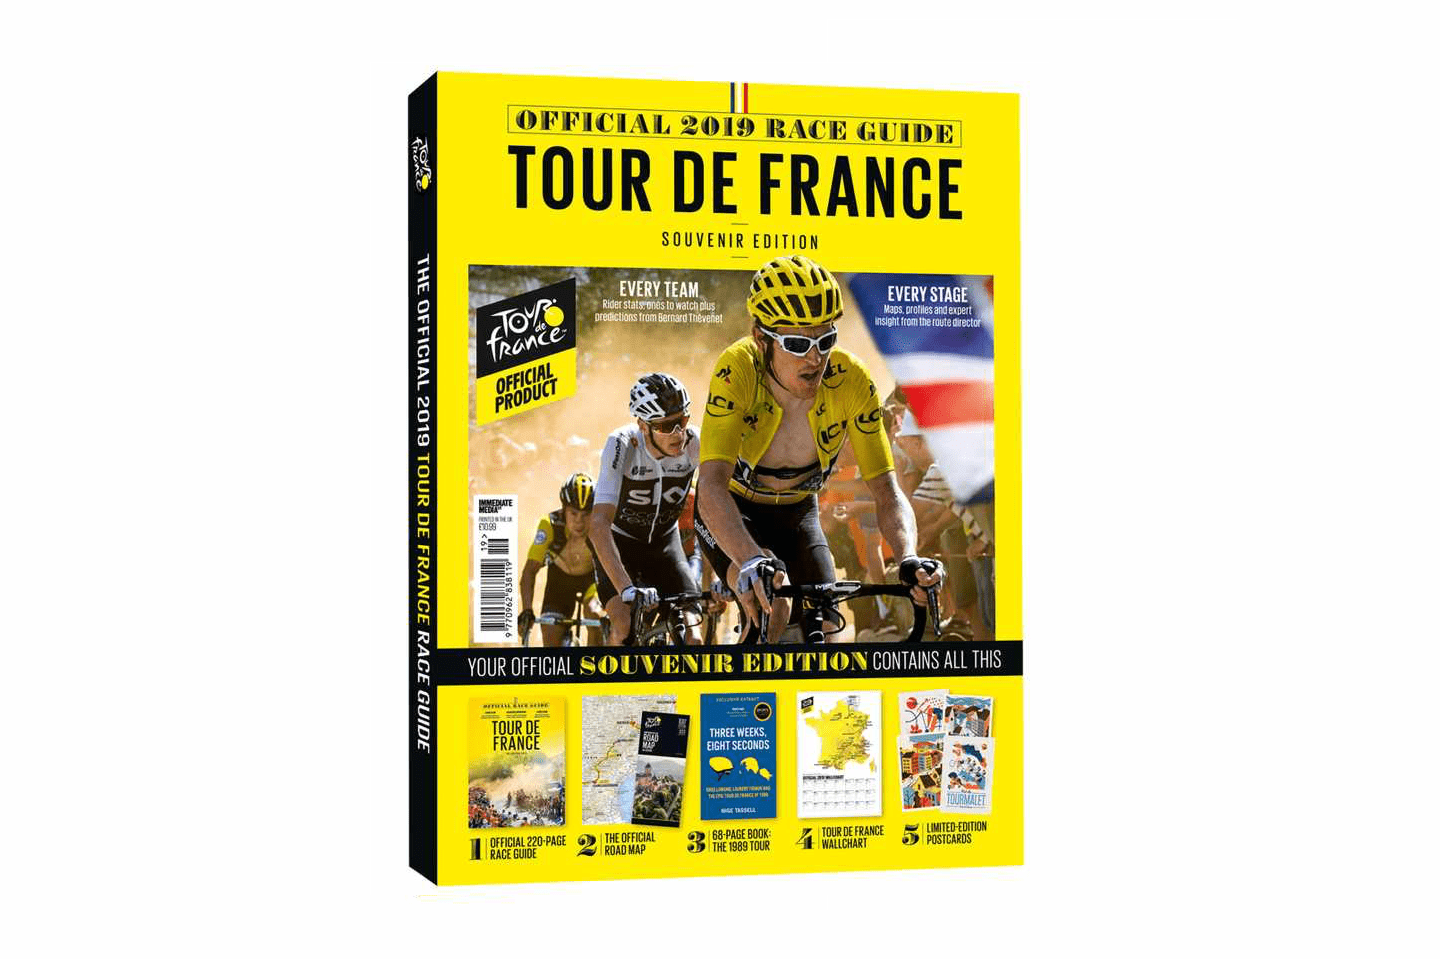 The Official Tour de France Race Guide 2019 box front